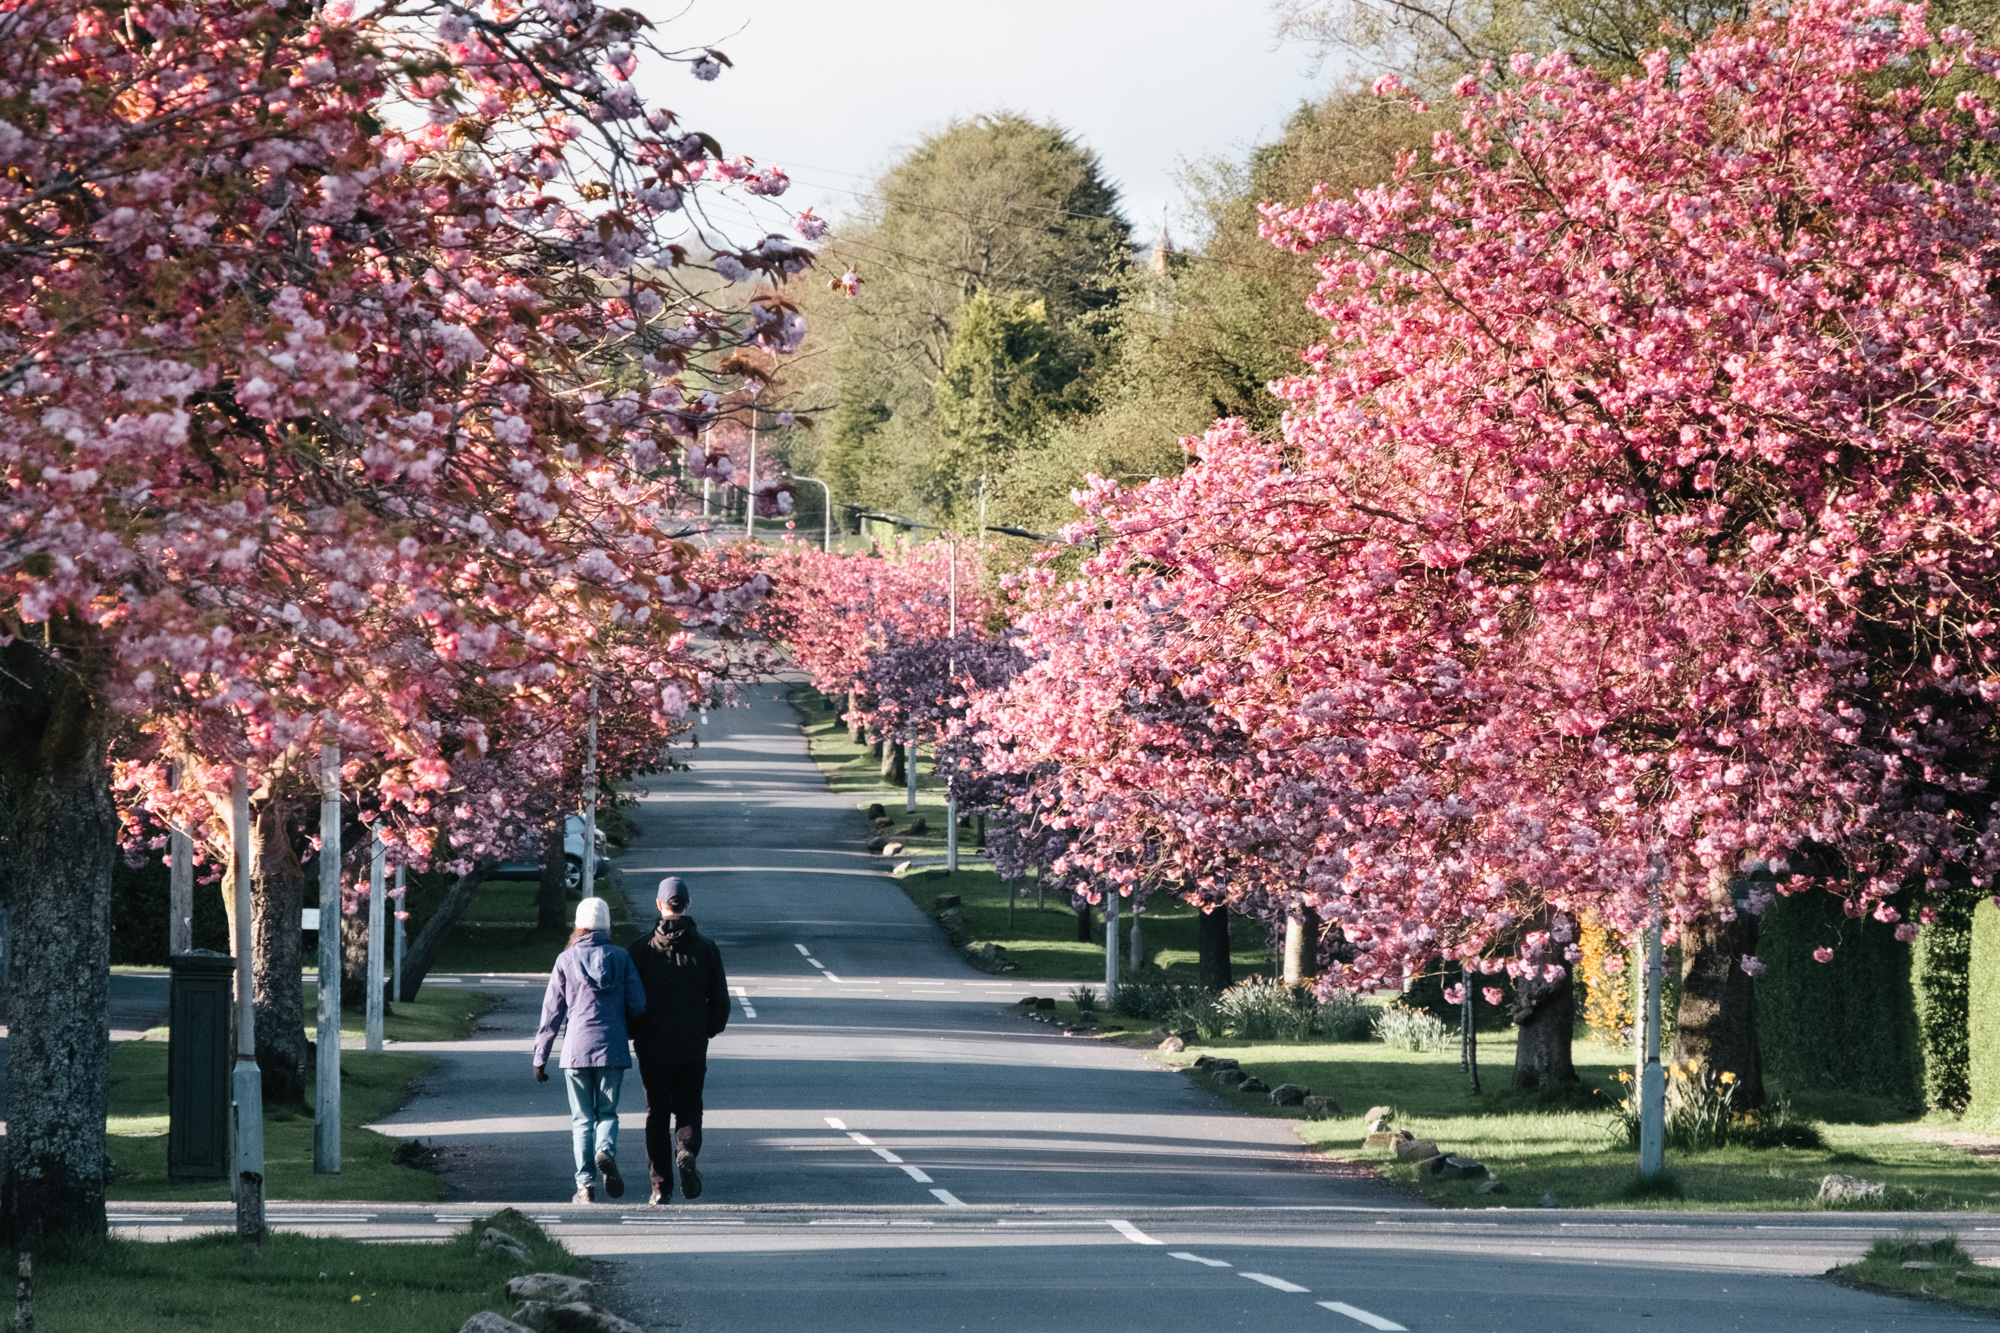 Helensburgh streets in Spring